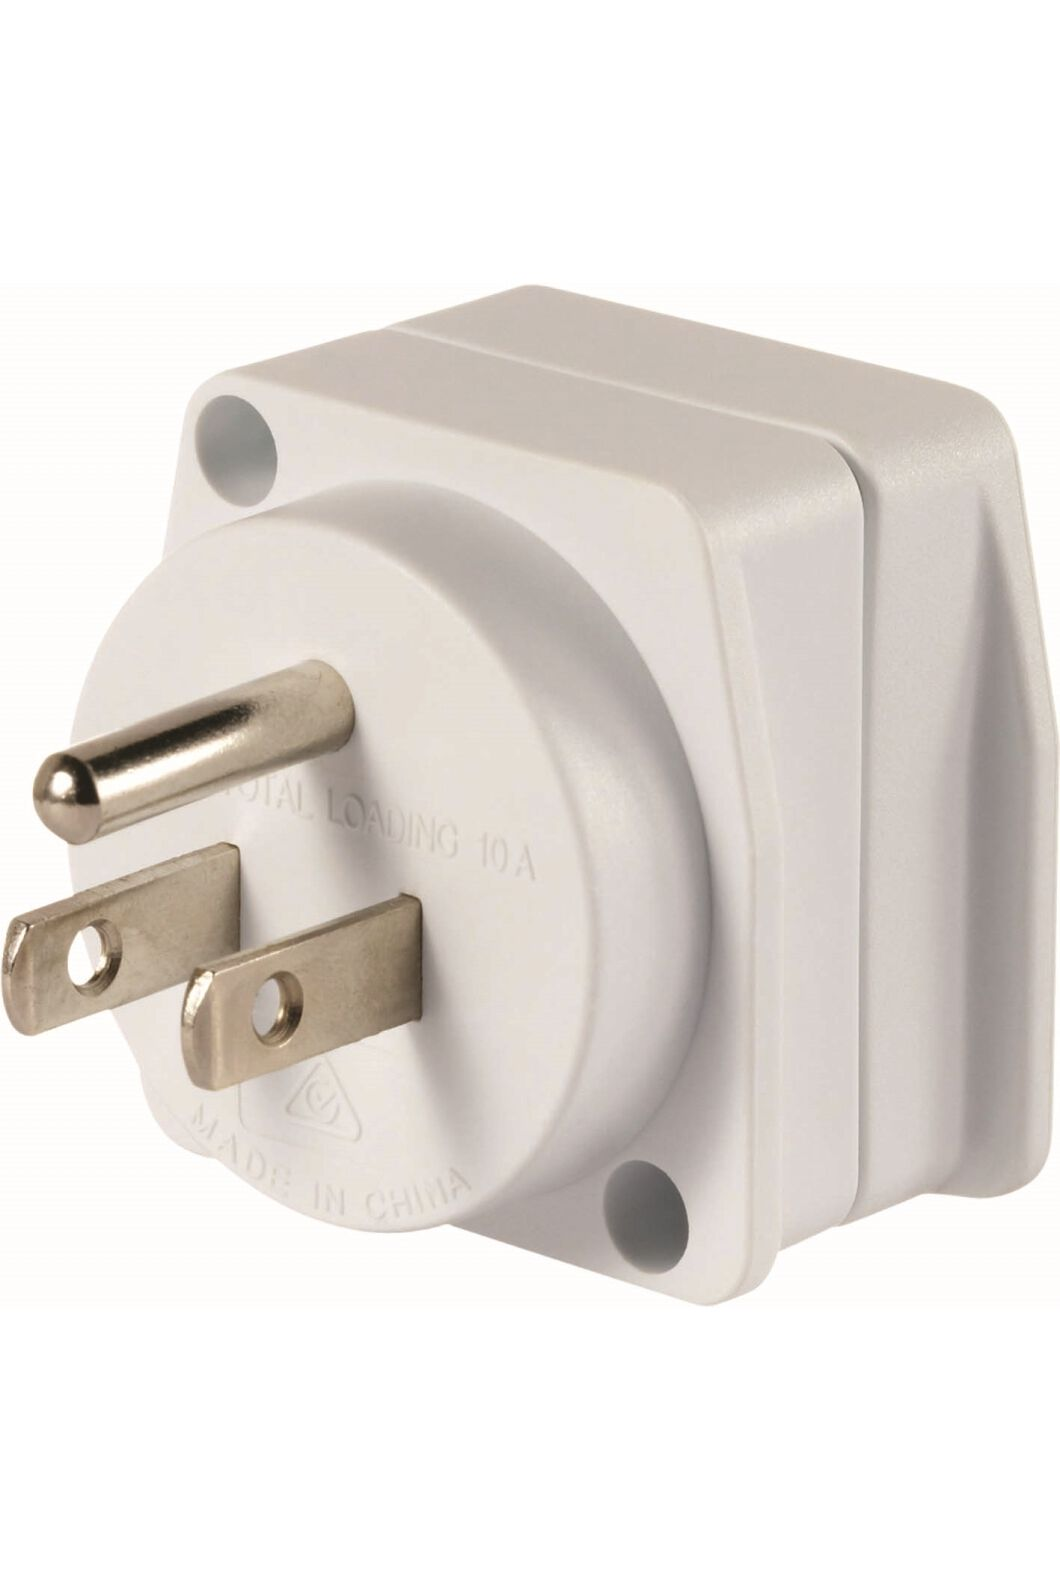 Go Travel Design Go US Adaptor, None, hi-res